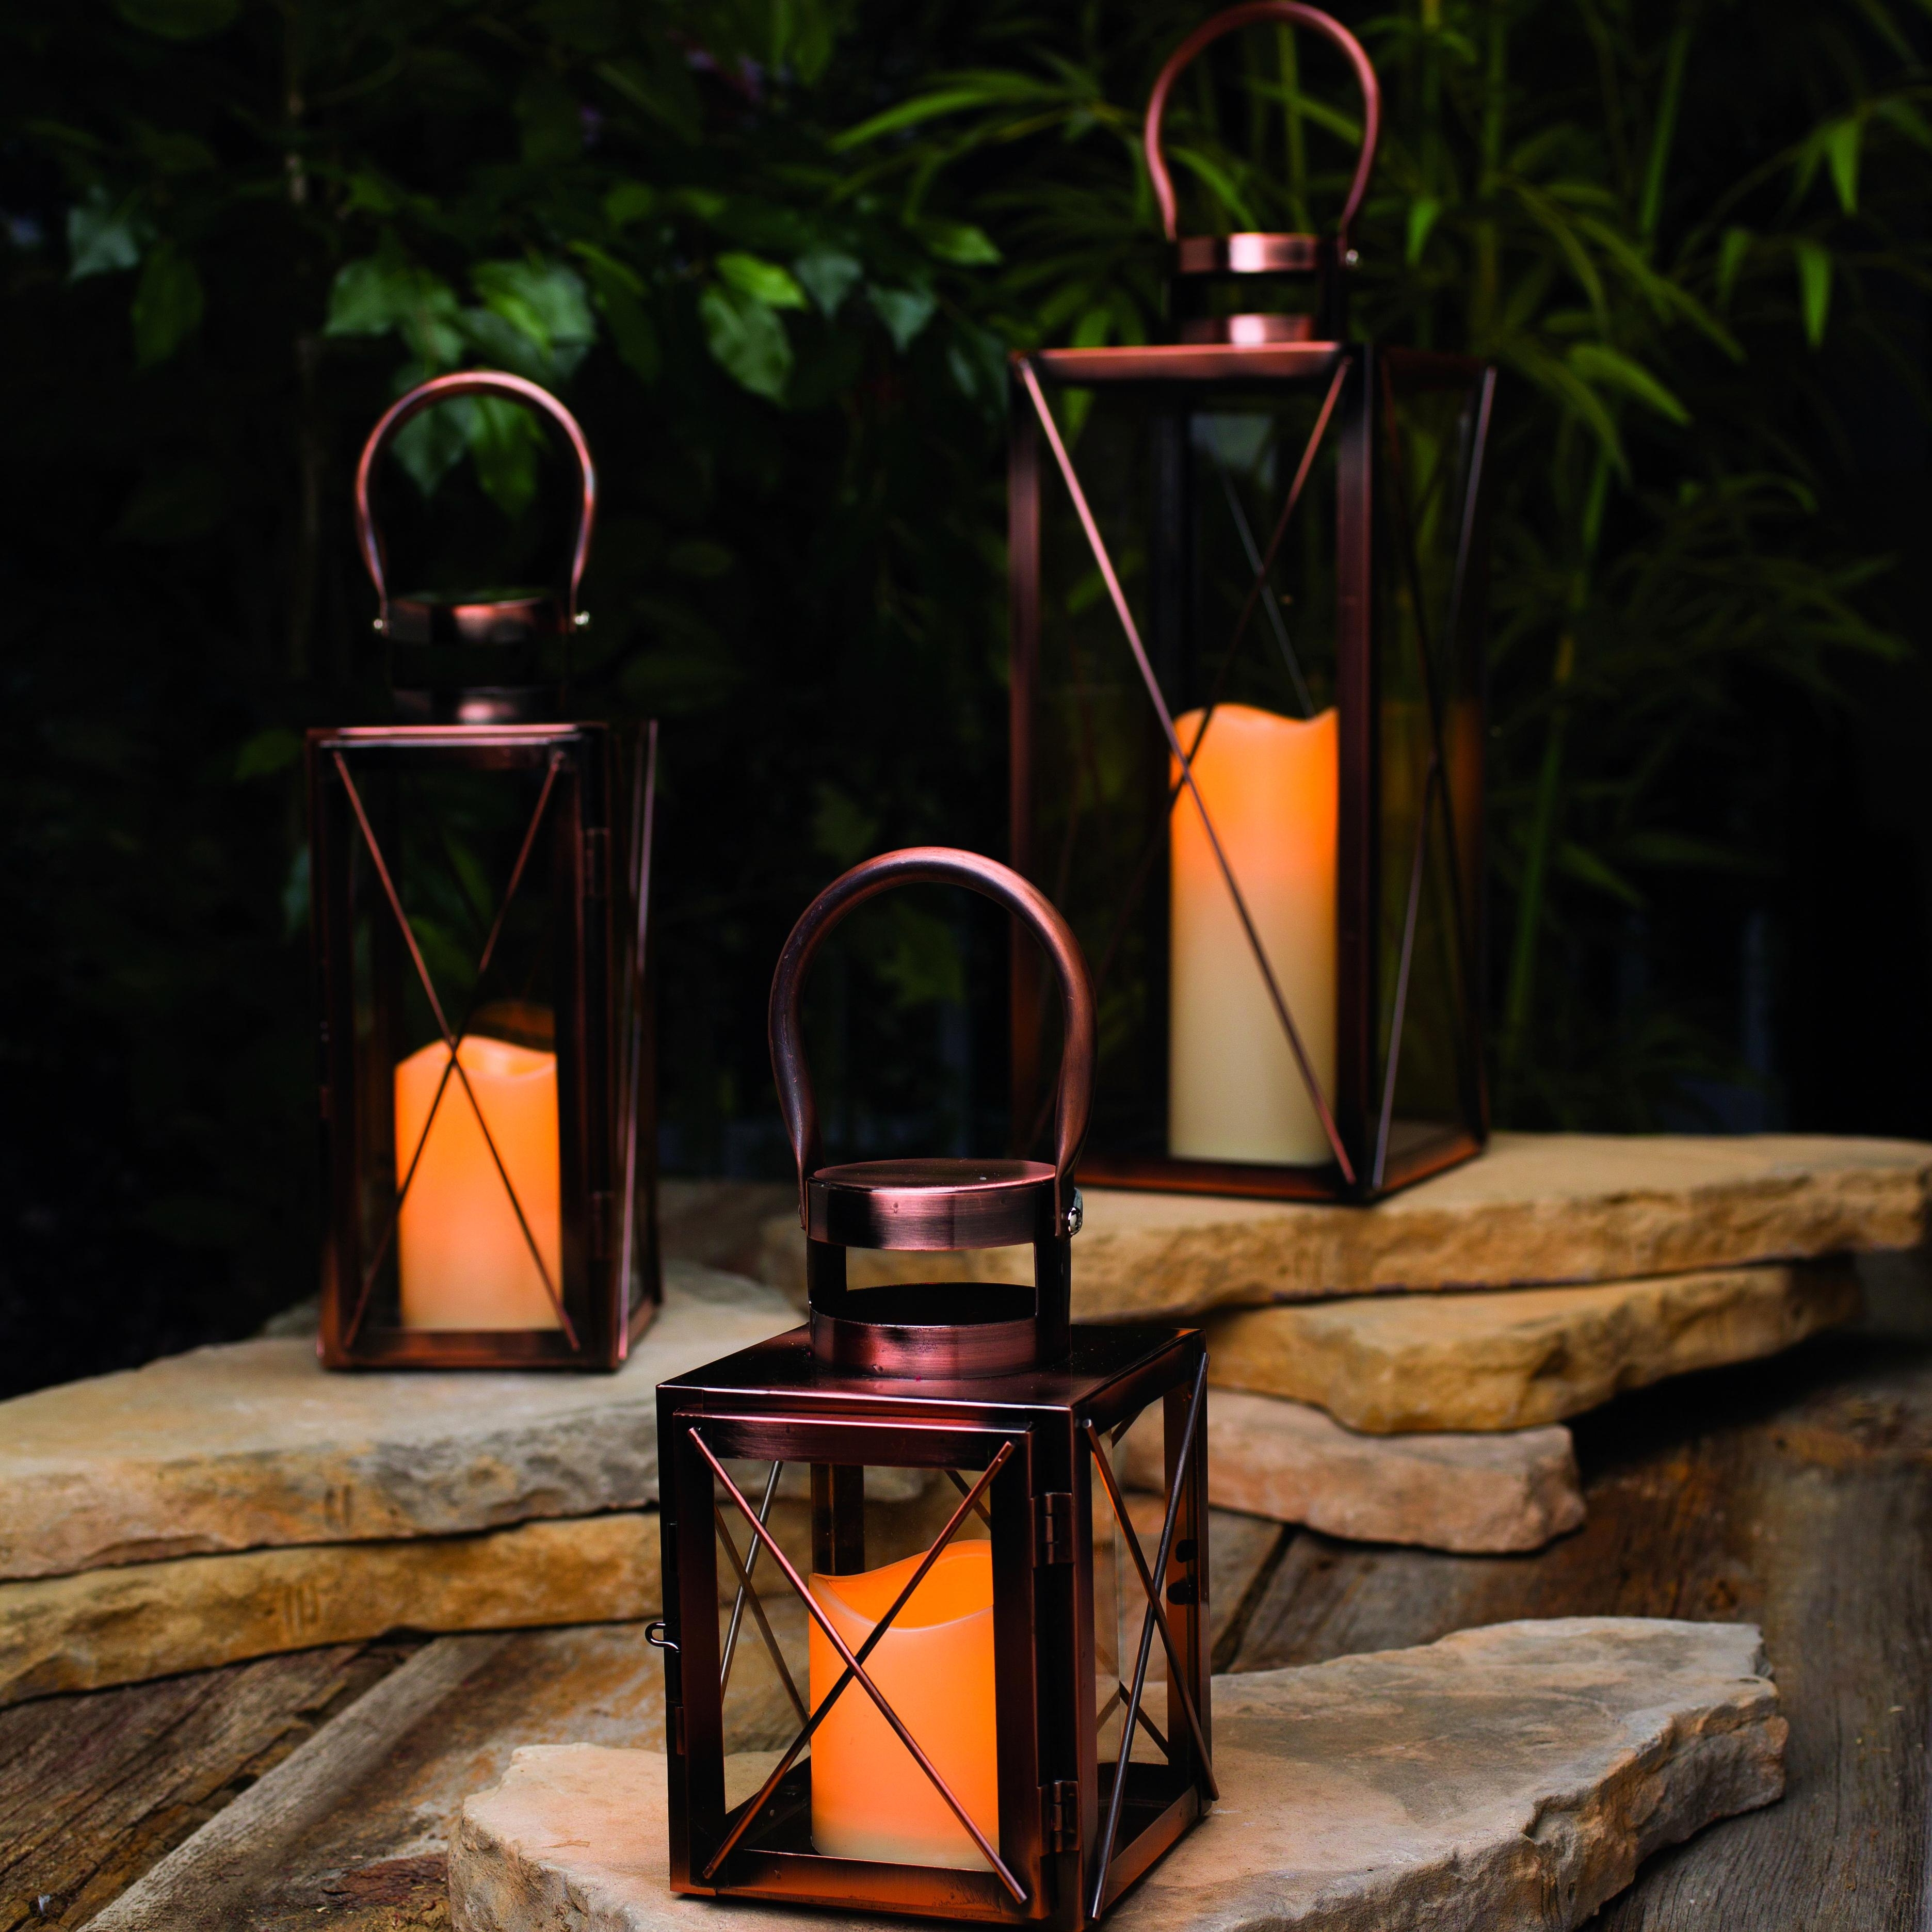 Outdoor Candle Lanterns For Patio Throughout Current Improbable Patio String Lights Complement Space Outdoor Candle (View 2 of 20)